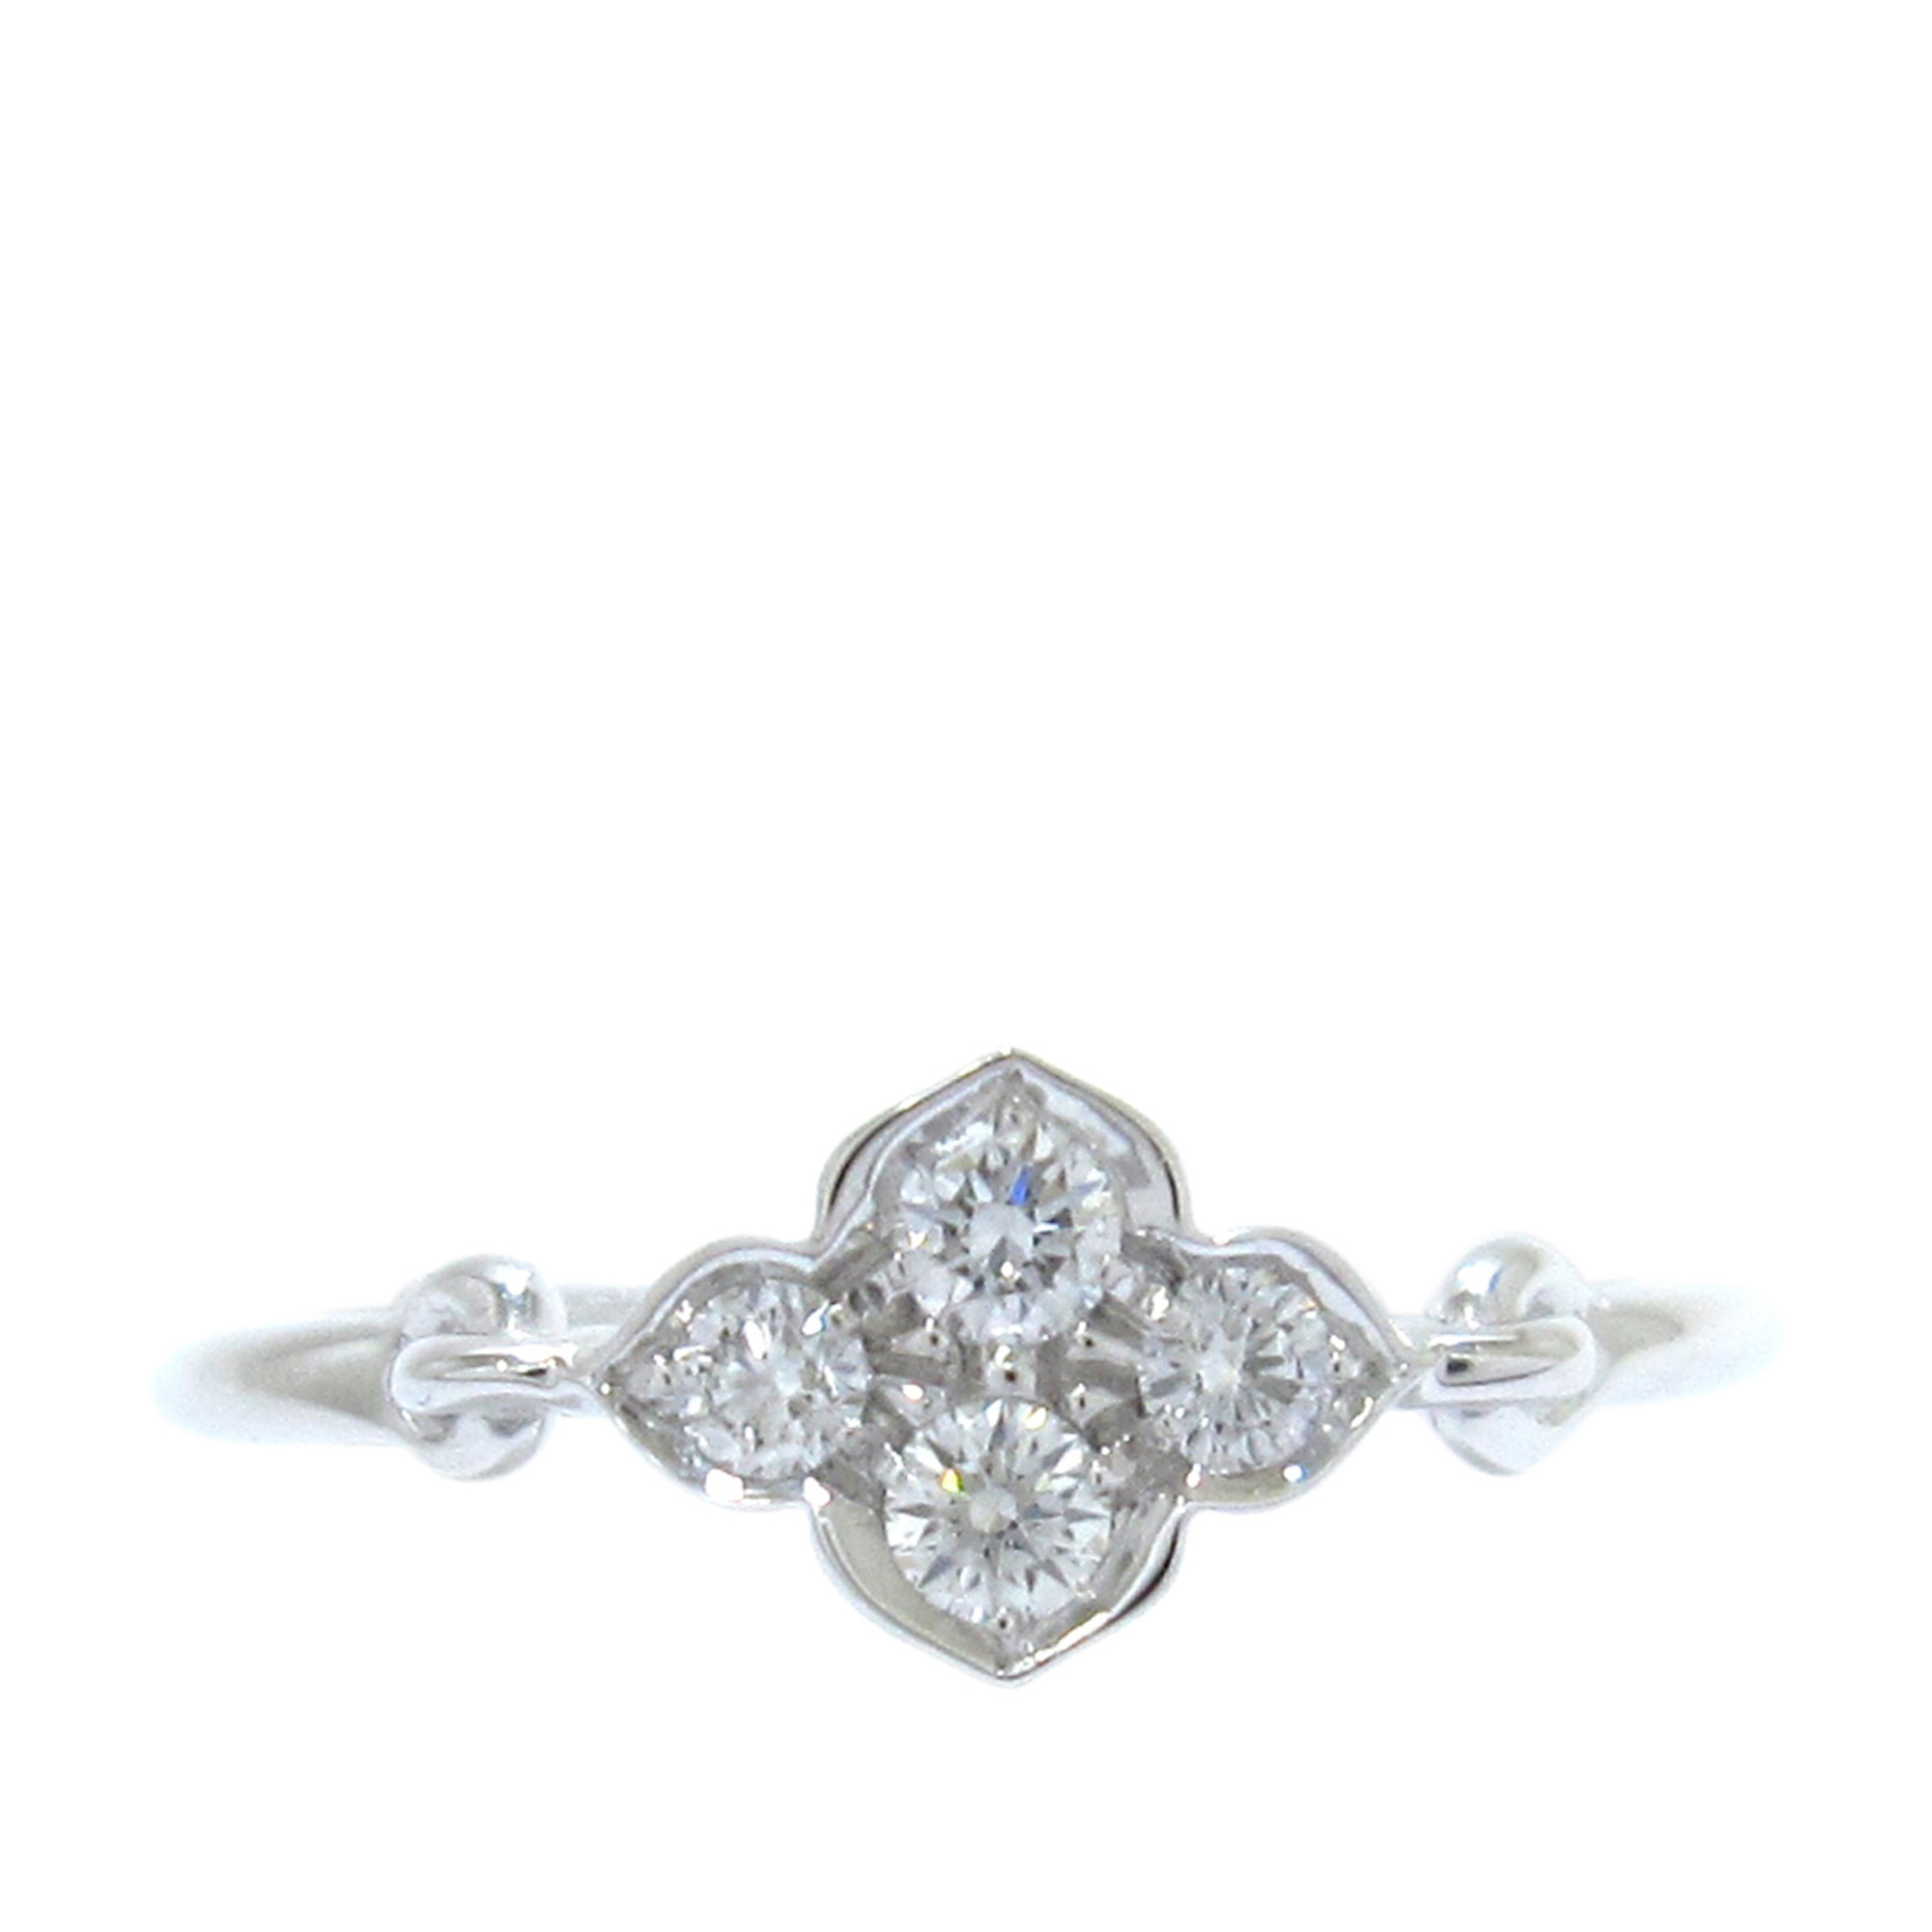 Cartier Floral Diamond White Gold Ring Size 52